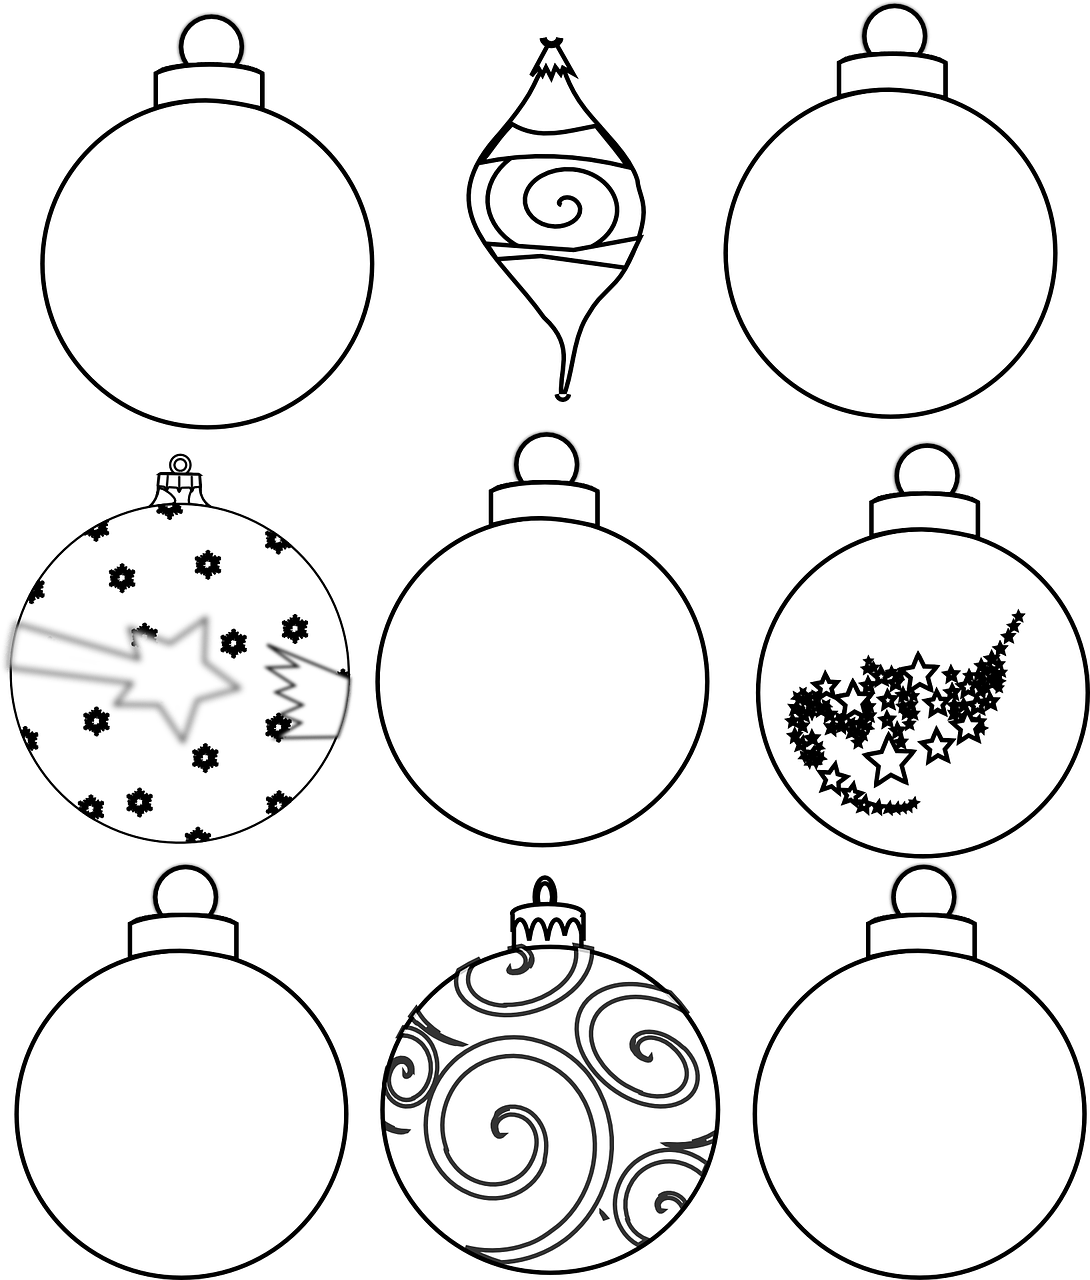 Christmas Ornament Coloring Sheet With Colour And Design Your Own Ornaments Printables